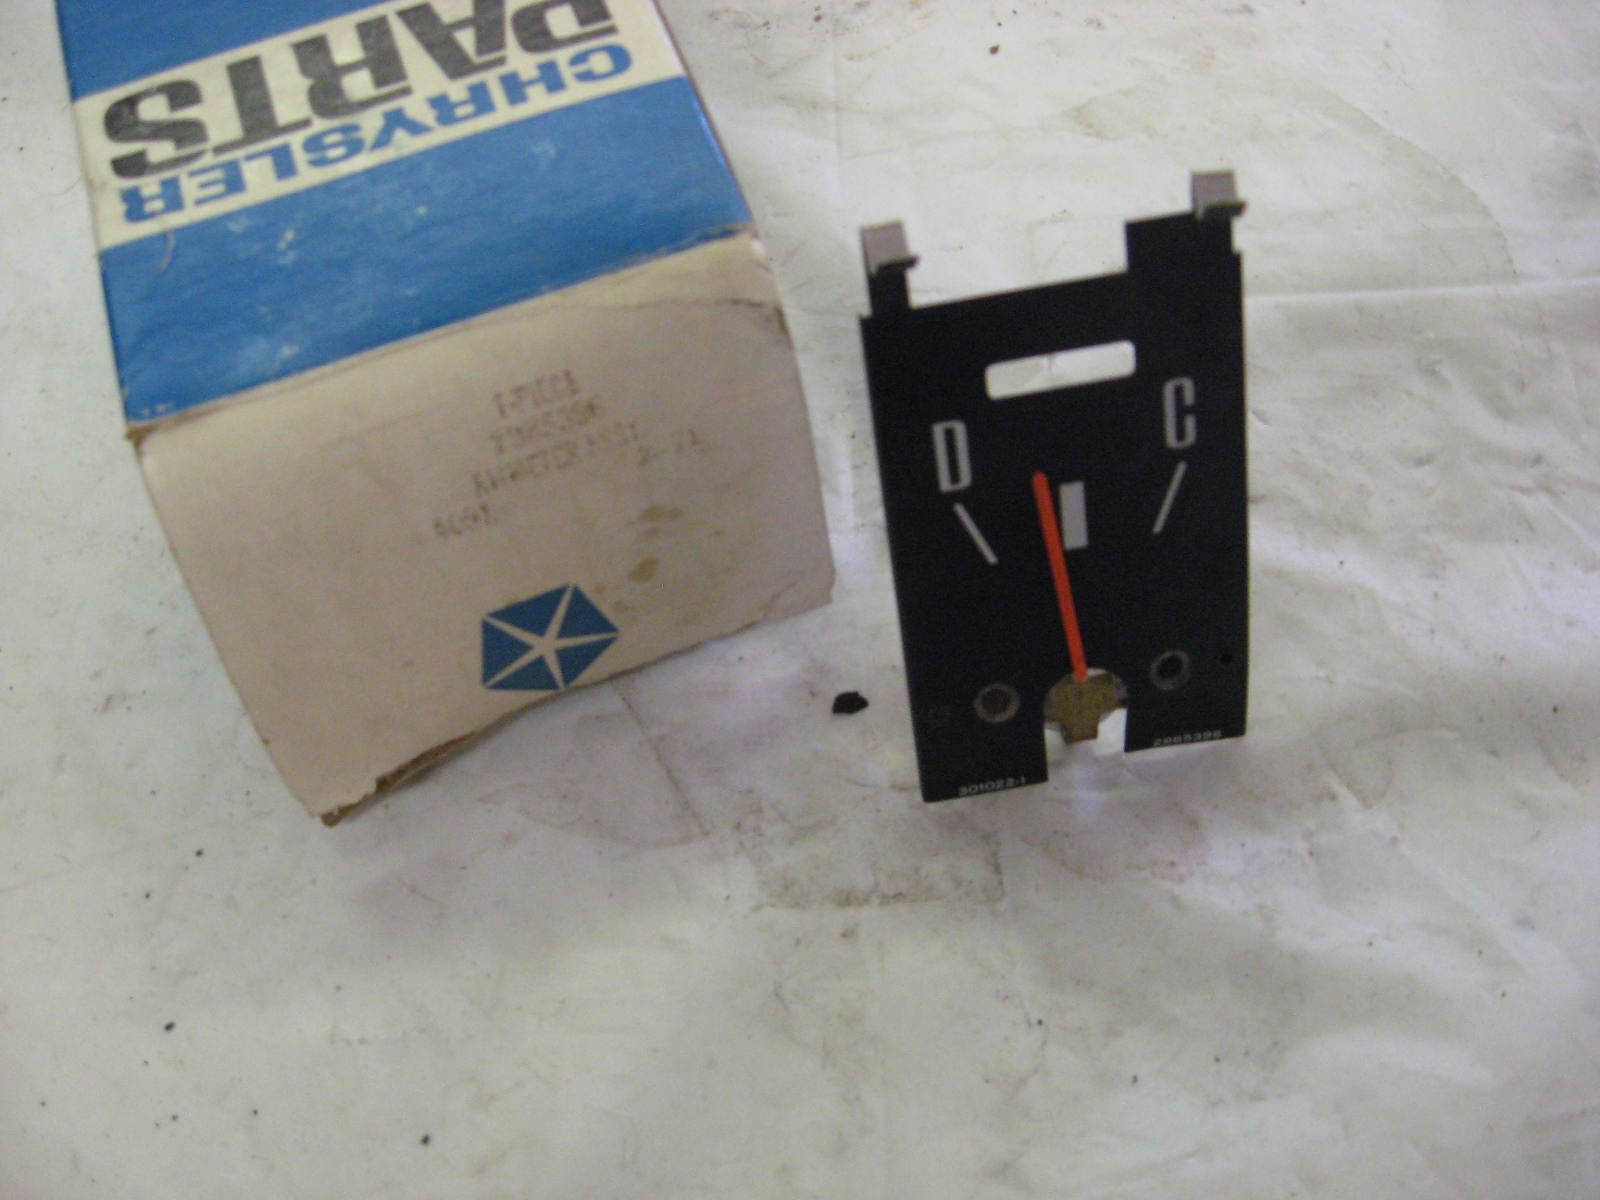 1971-4 Charger Roadrunner satellite ammeter nos 2985396 (a 2985396)